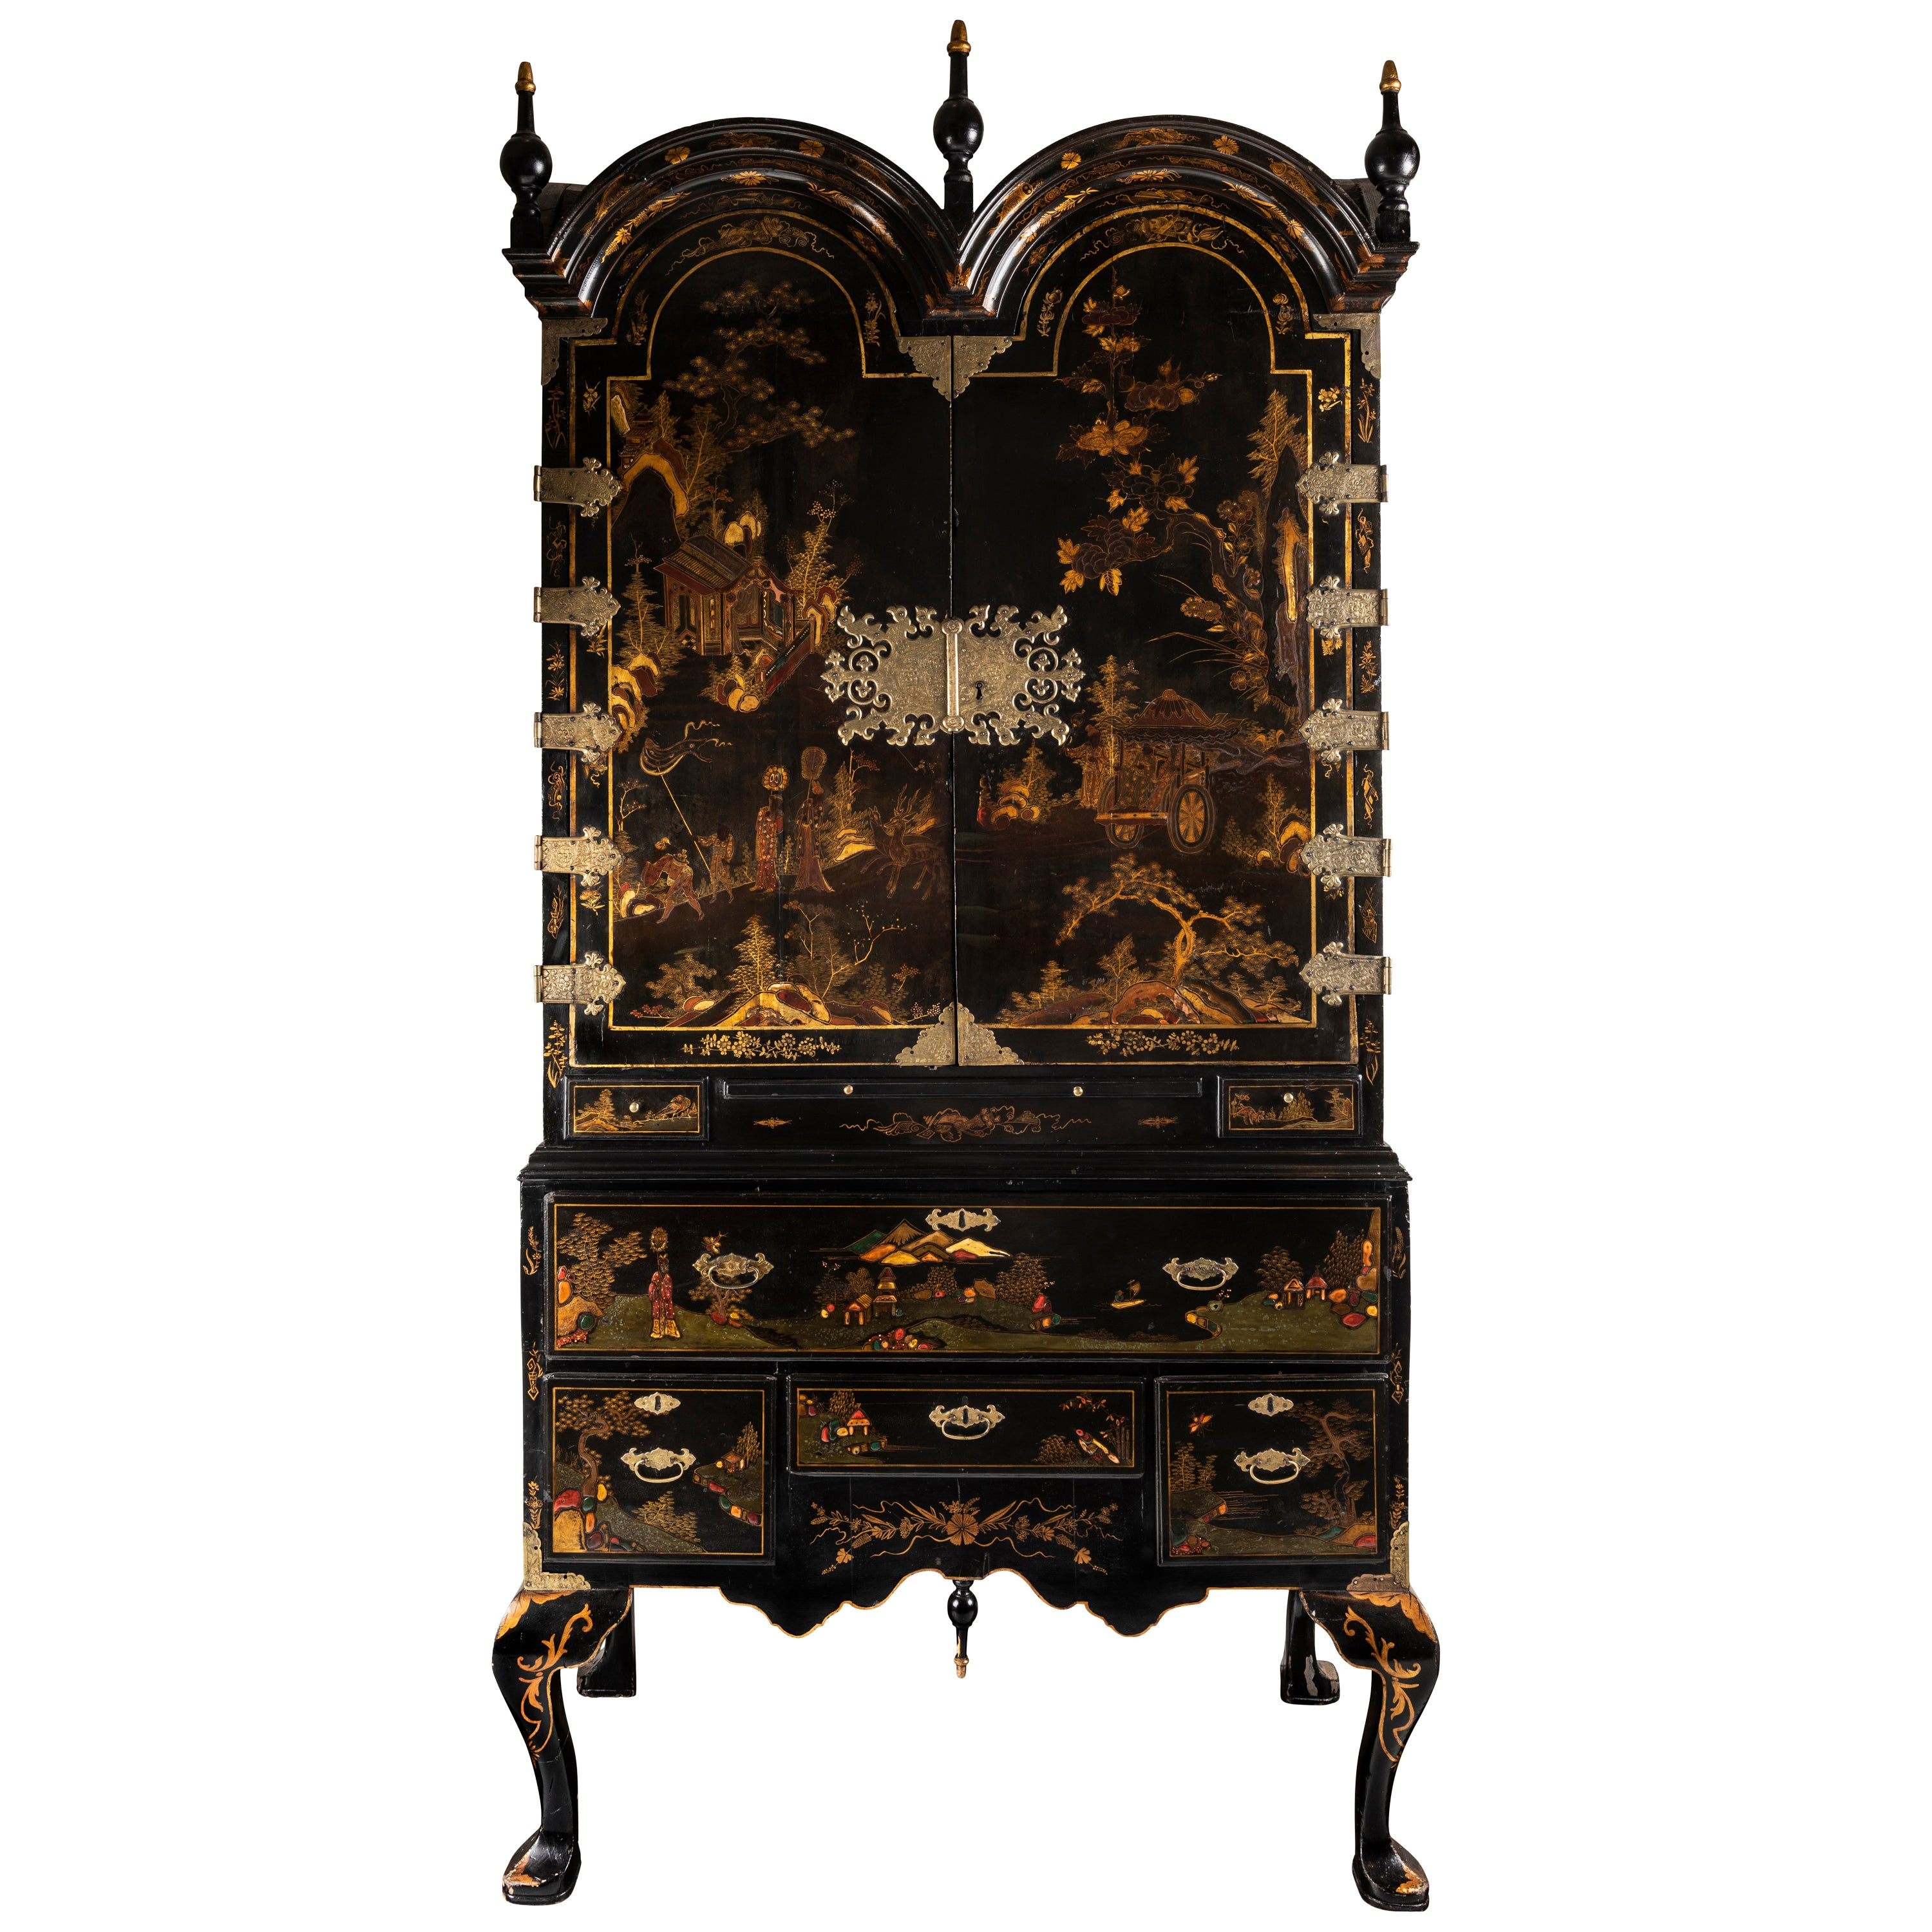 A Late 18th to Early 19th Century Large Chinoiserie Black Lacquer Cabinet